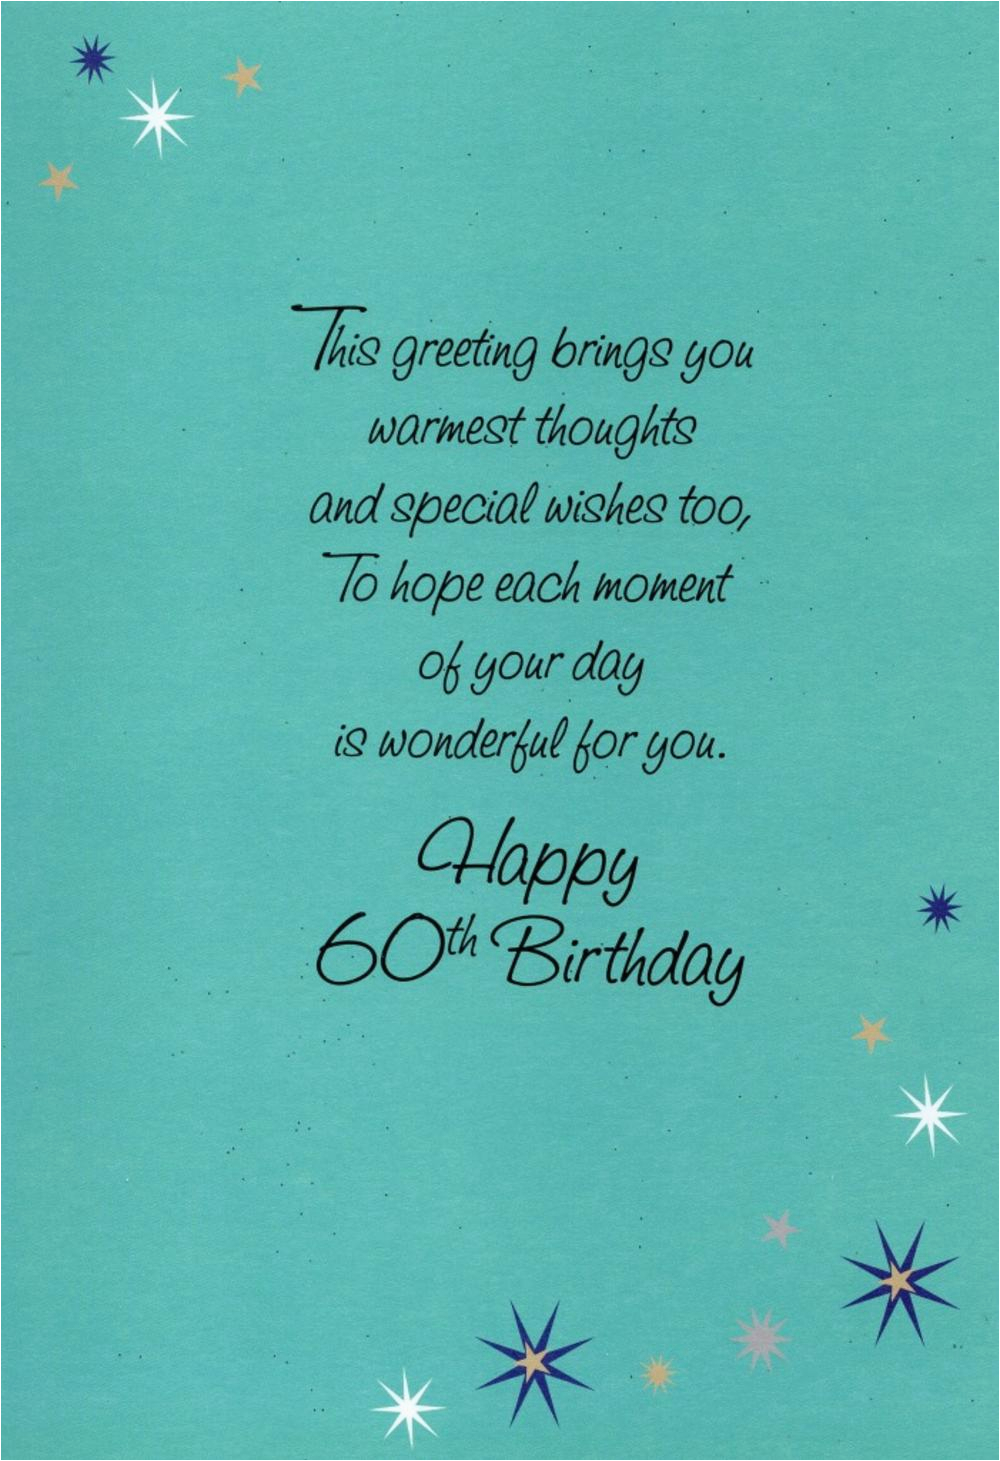 kcprfld025 happy 60th birthday greeting card lovely greetings cards nice verse